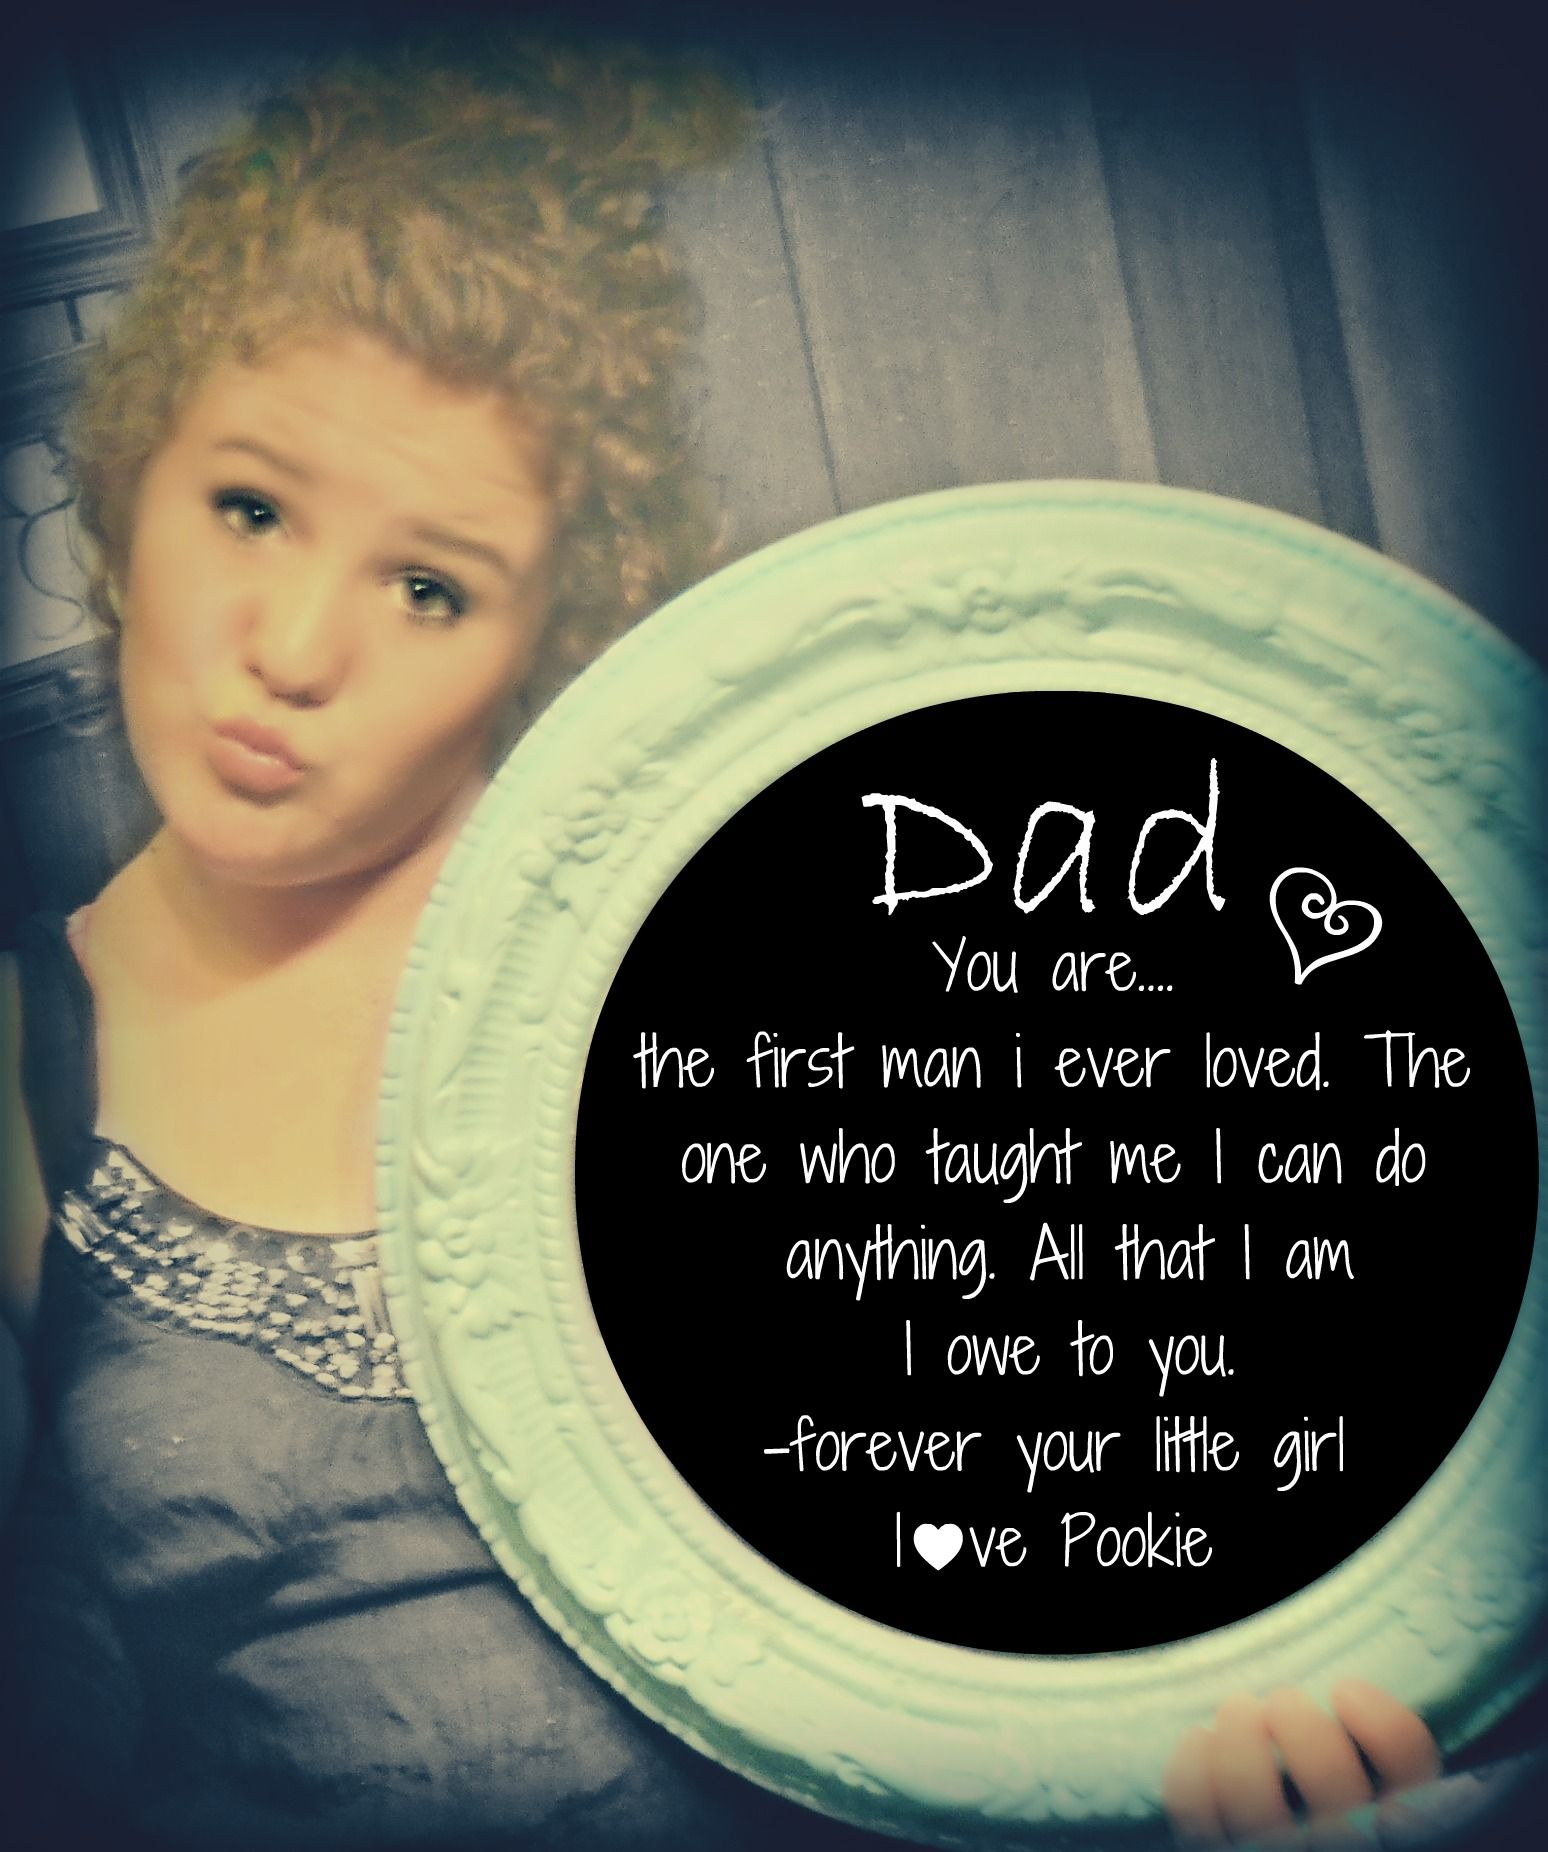 fathers day present! HAPPY FATHERS DAY DAD i♥u!